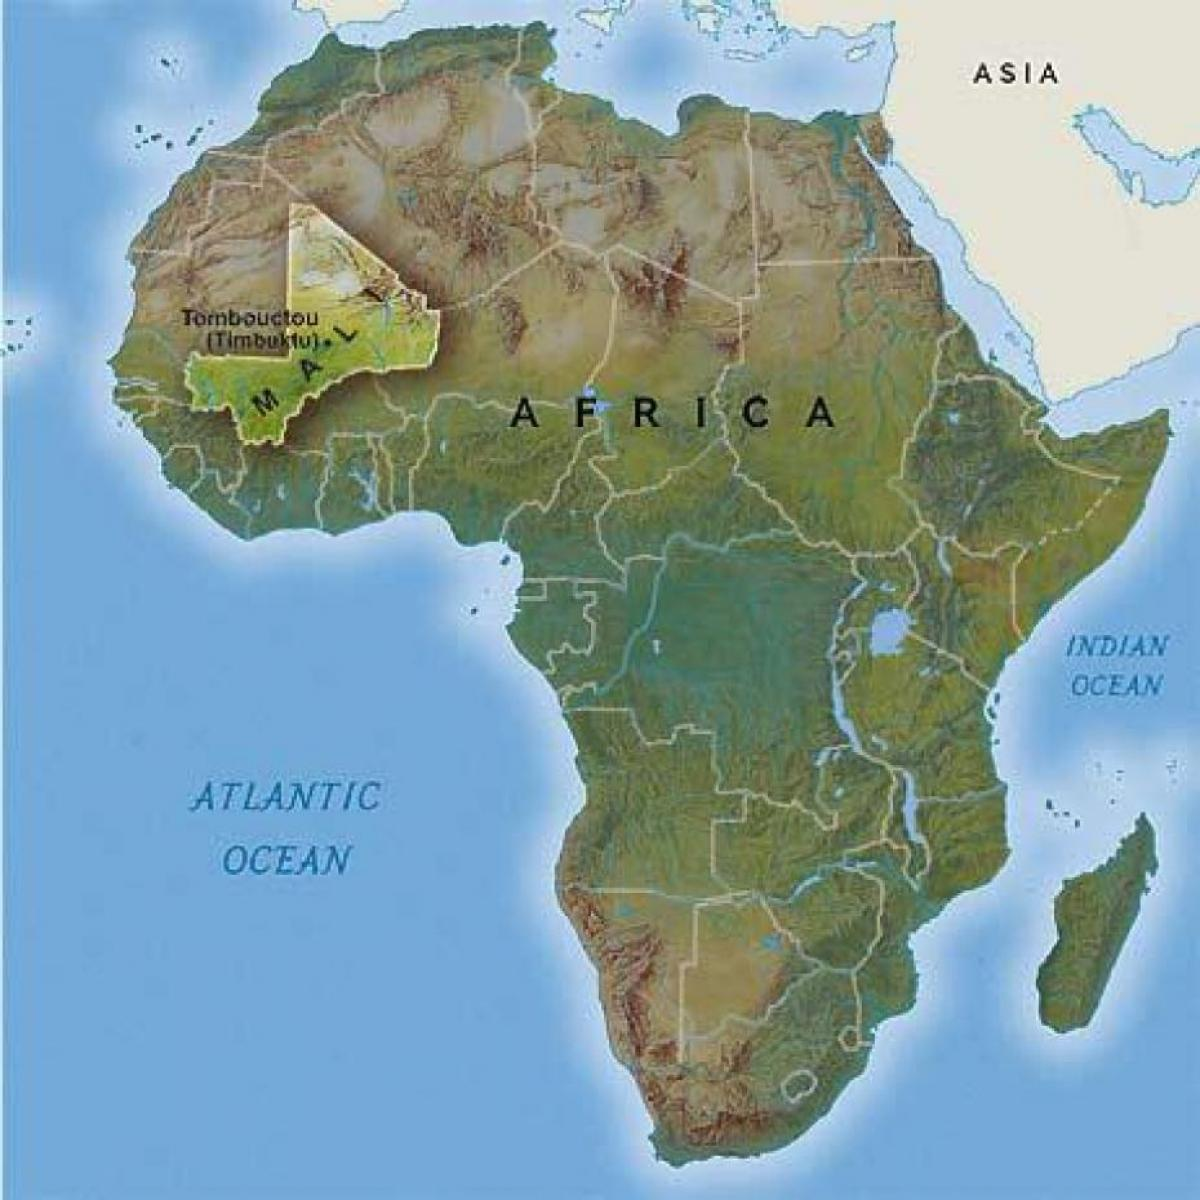 Where Is Timbuktu On A Map Of Africa Timbuktu Mali map   Tombouctou Mali map (Western Africa   Africa)